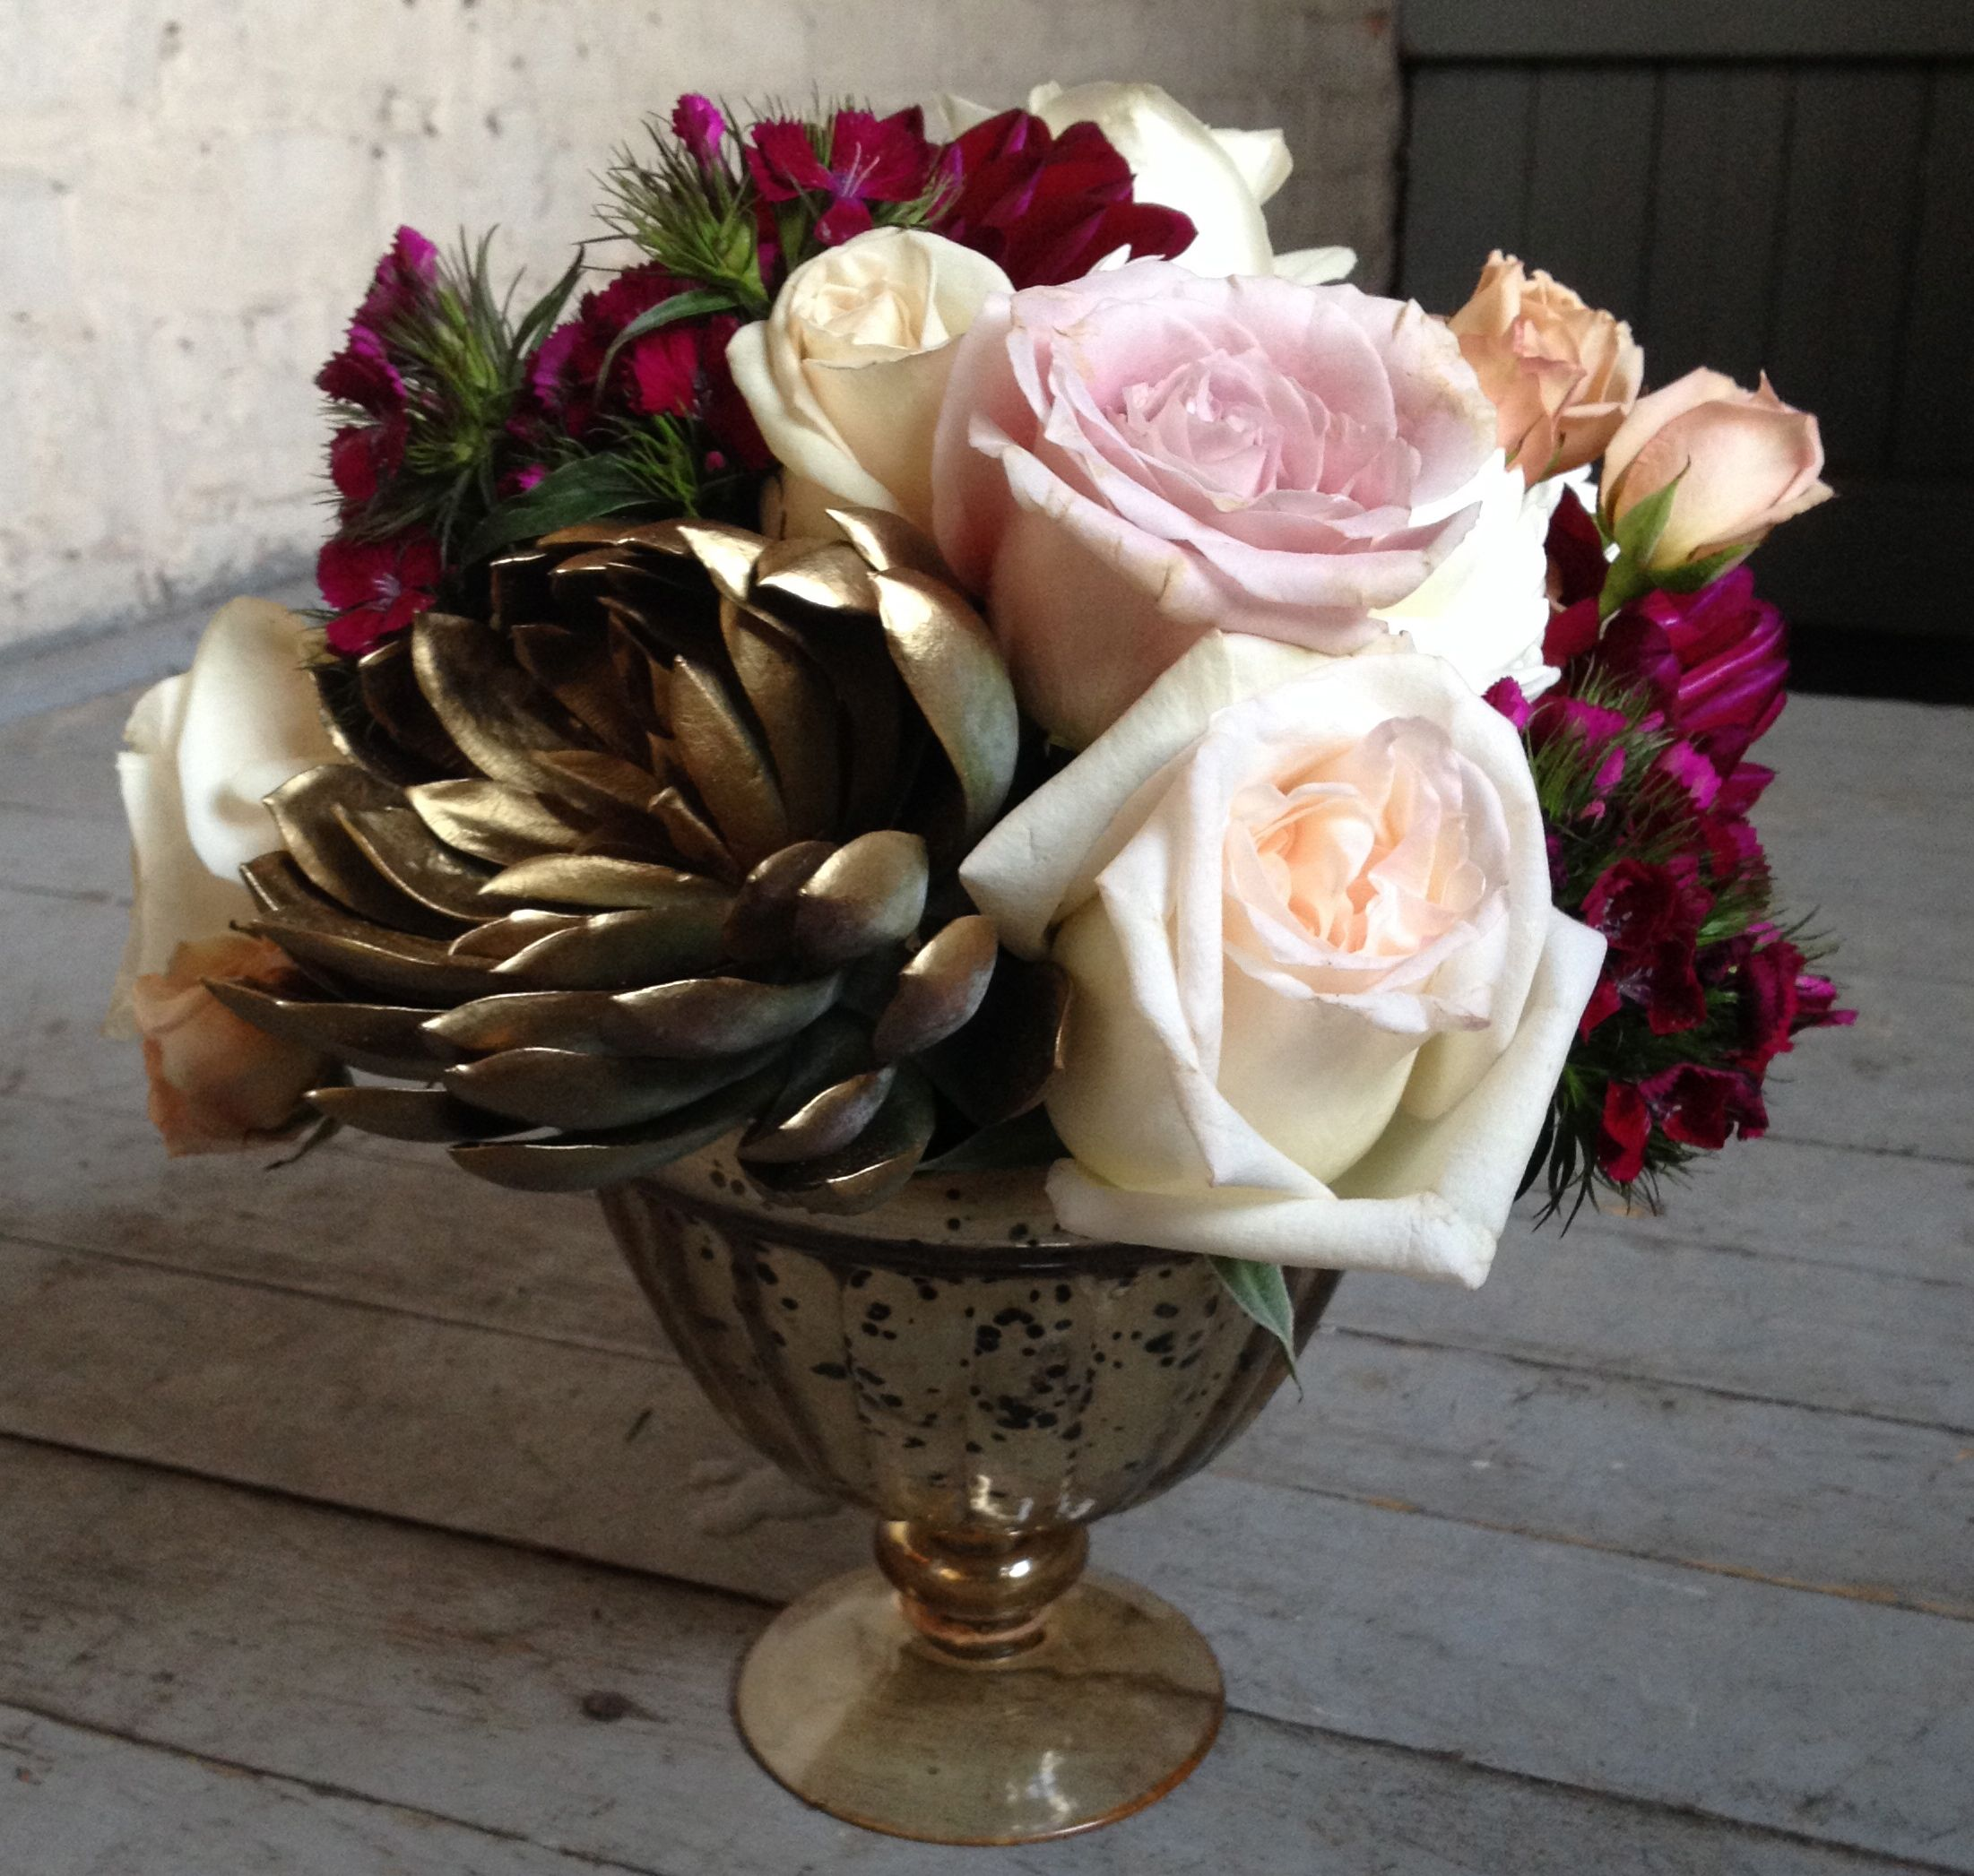 """Notice the gold """"flower""""...it's not a flower but a gold spray painted succulent plant. Cool, huh? The vase is also vintage inspired gold. The inspiration for the flowers (and this blog post!) came from creative director, Megan Moran of  City Girl Weddings ."""